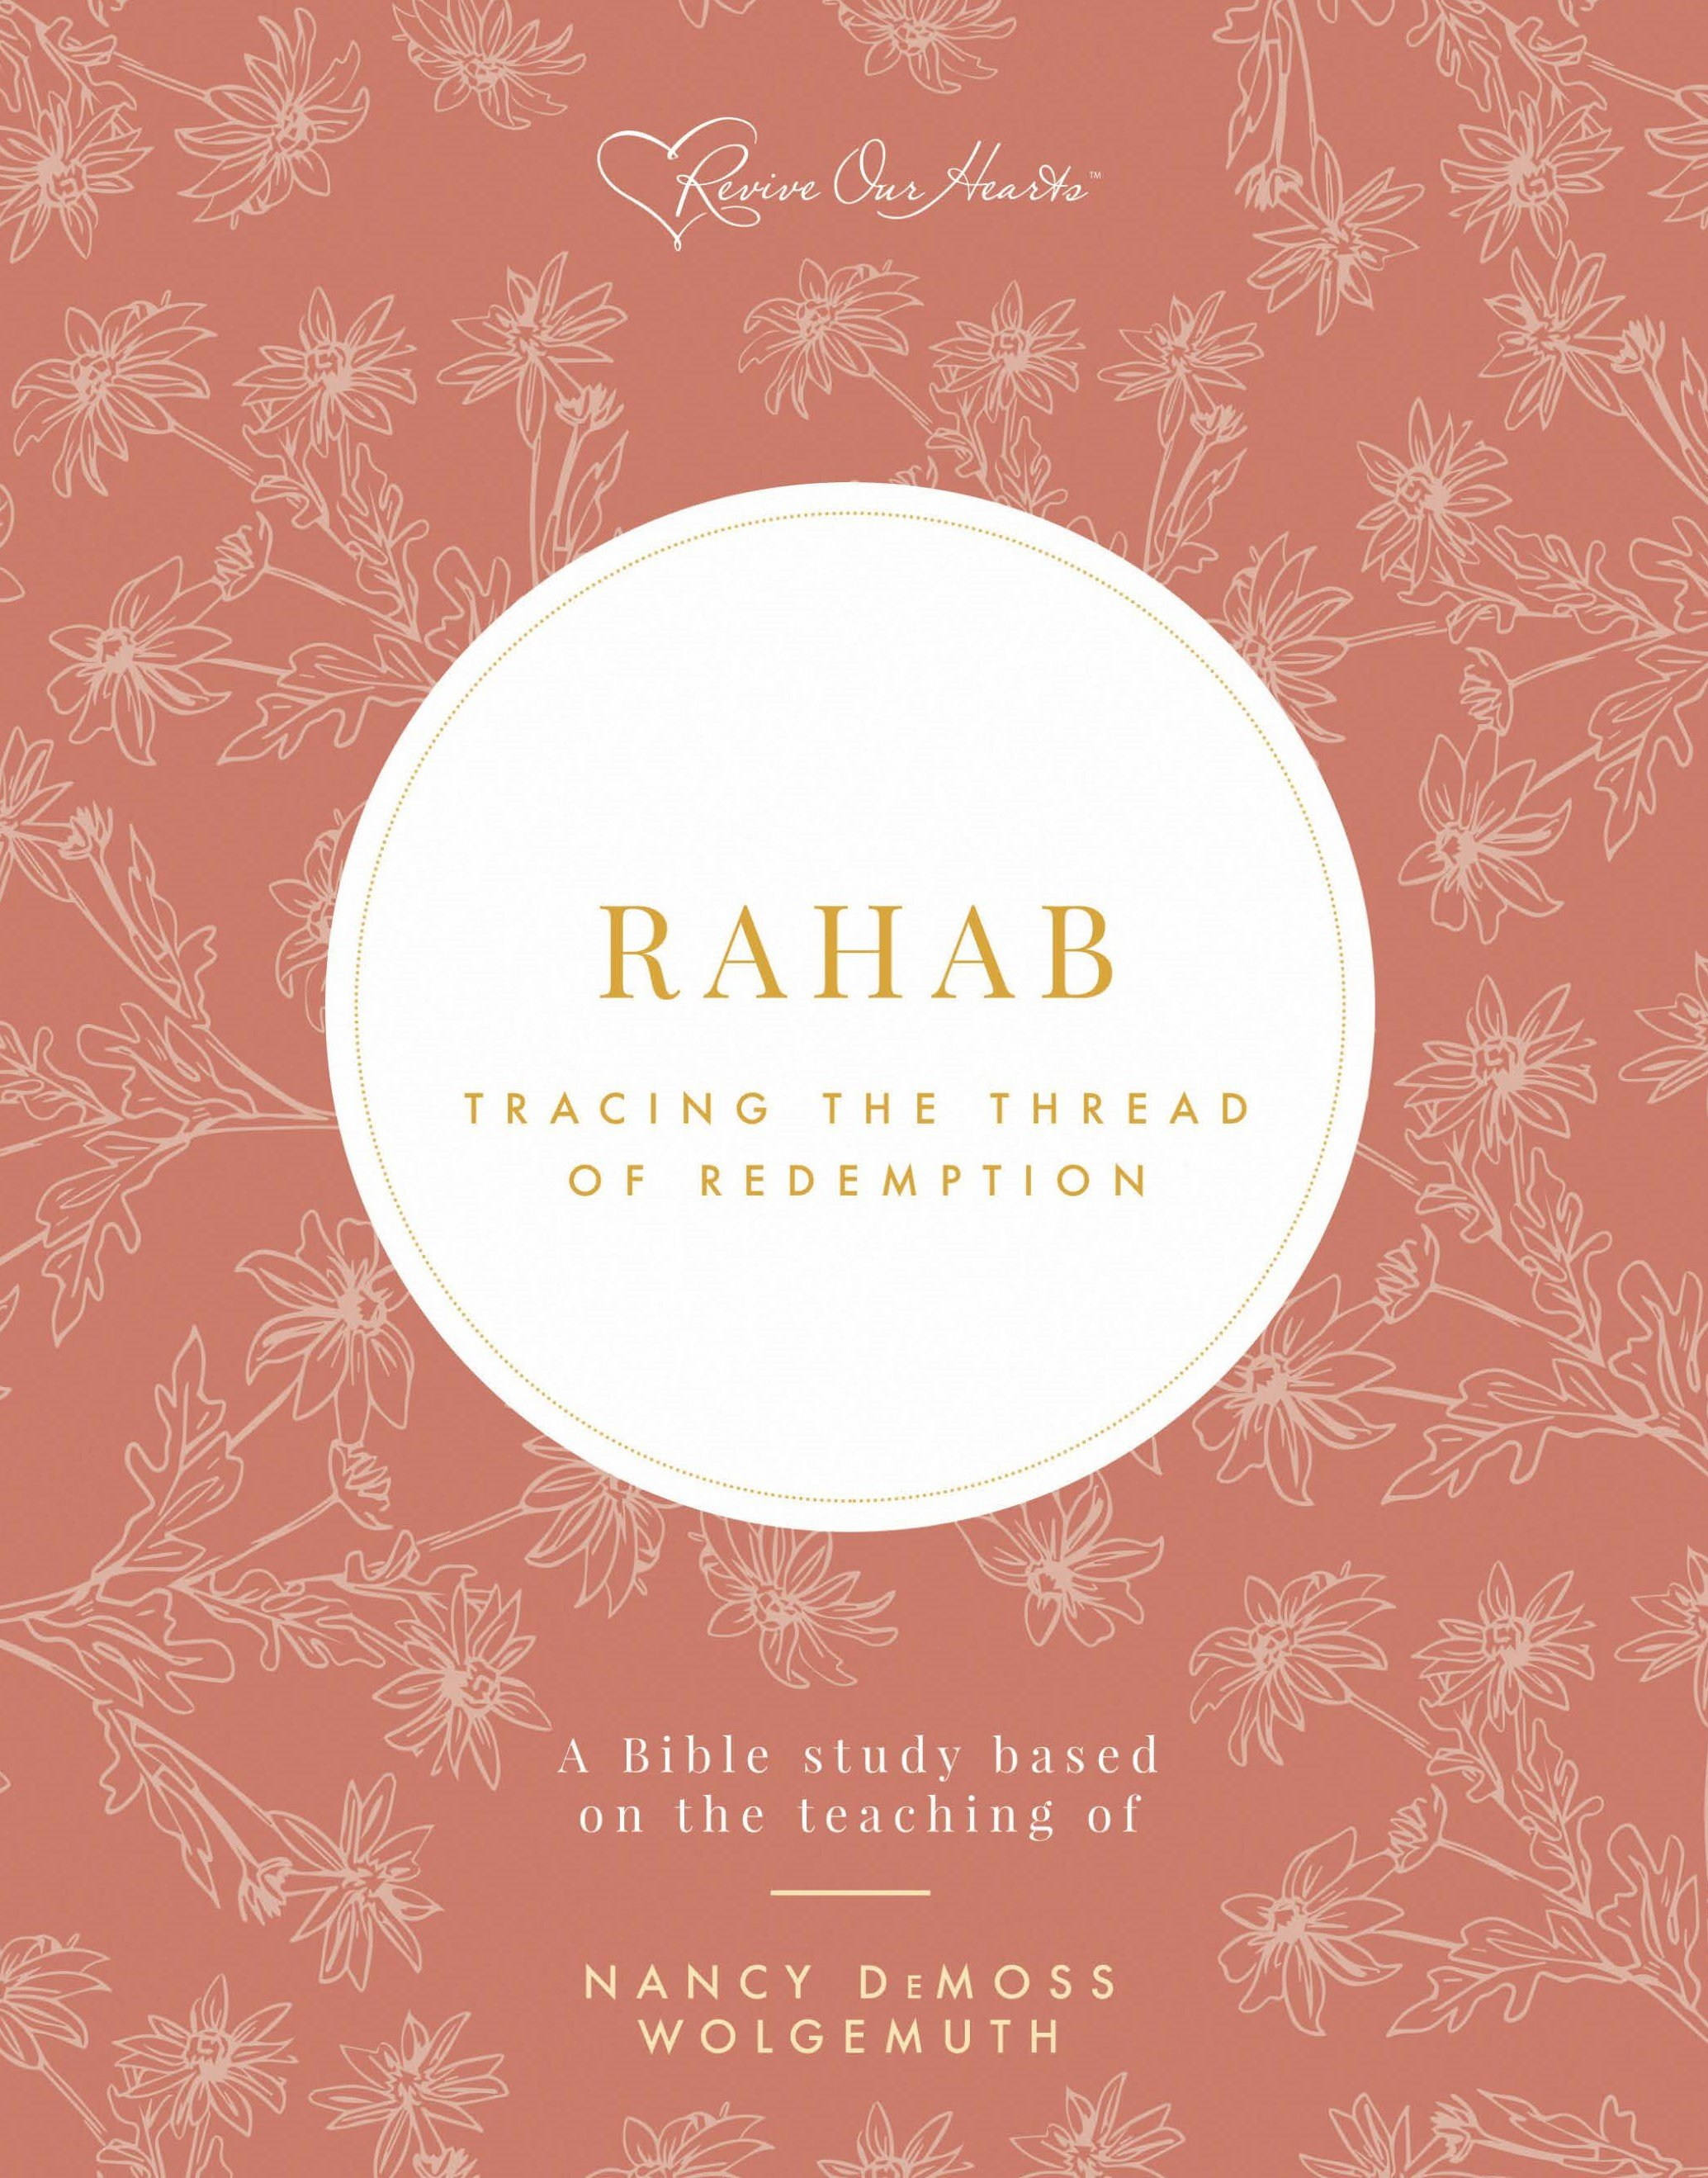 Rahab: Tracing the Thread of Redemption